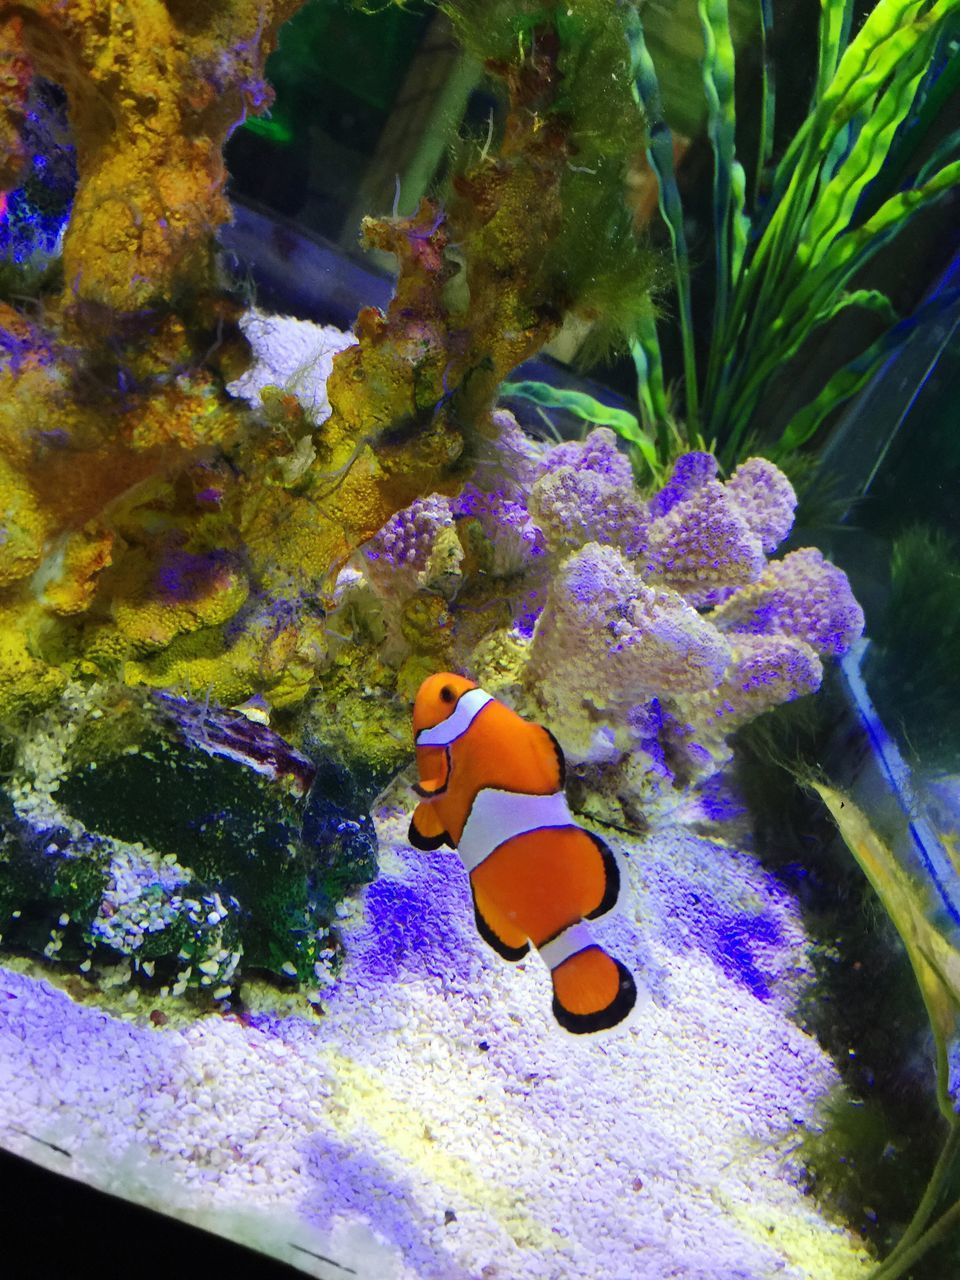 underwater, water, clown fish, sea life, fish, animal themes, undersea, swimming, animals in the wild, animal wildlife, no people, sea, coral, aquarium, nature, beauty in nature, sea anemone, indoors, close-up, day